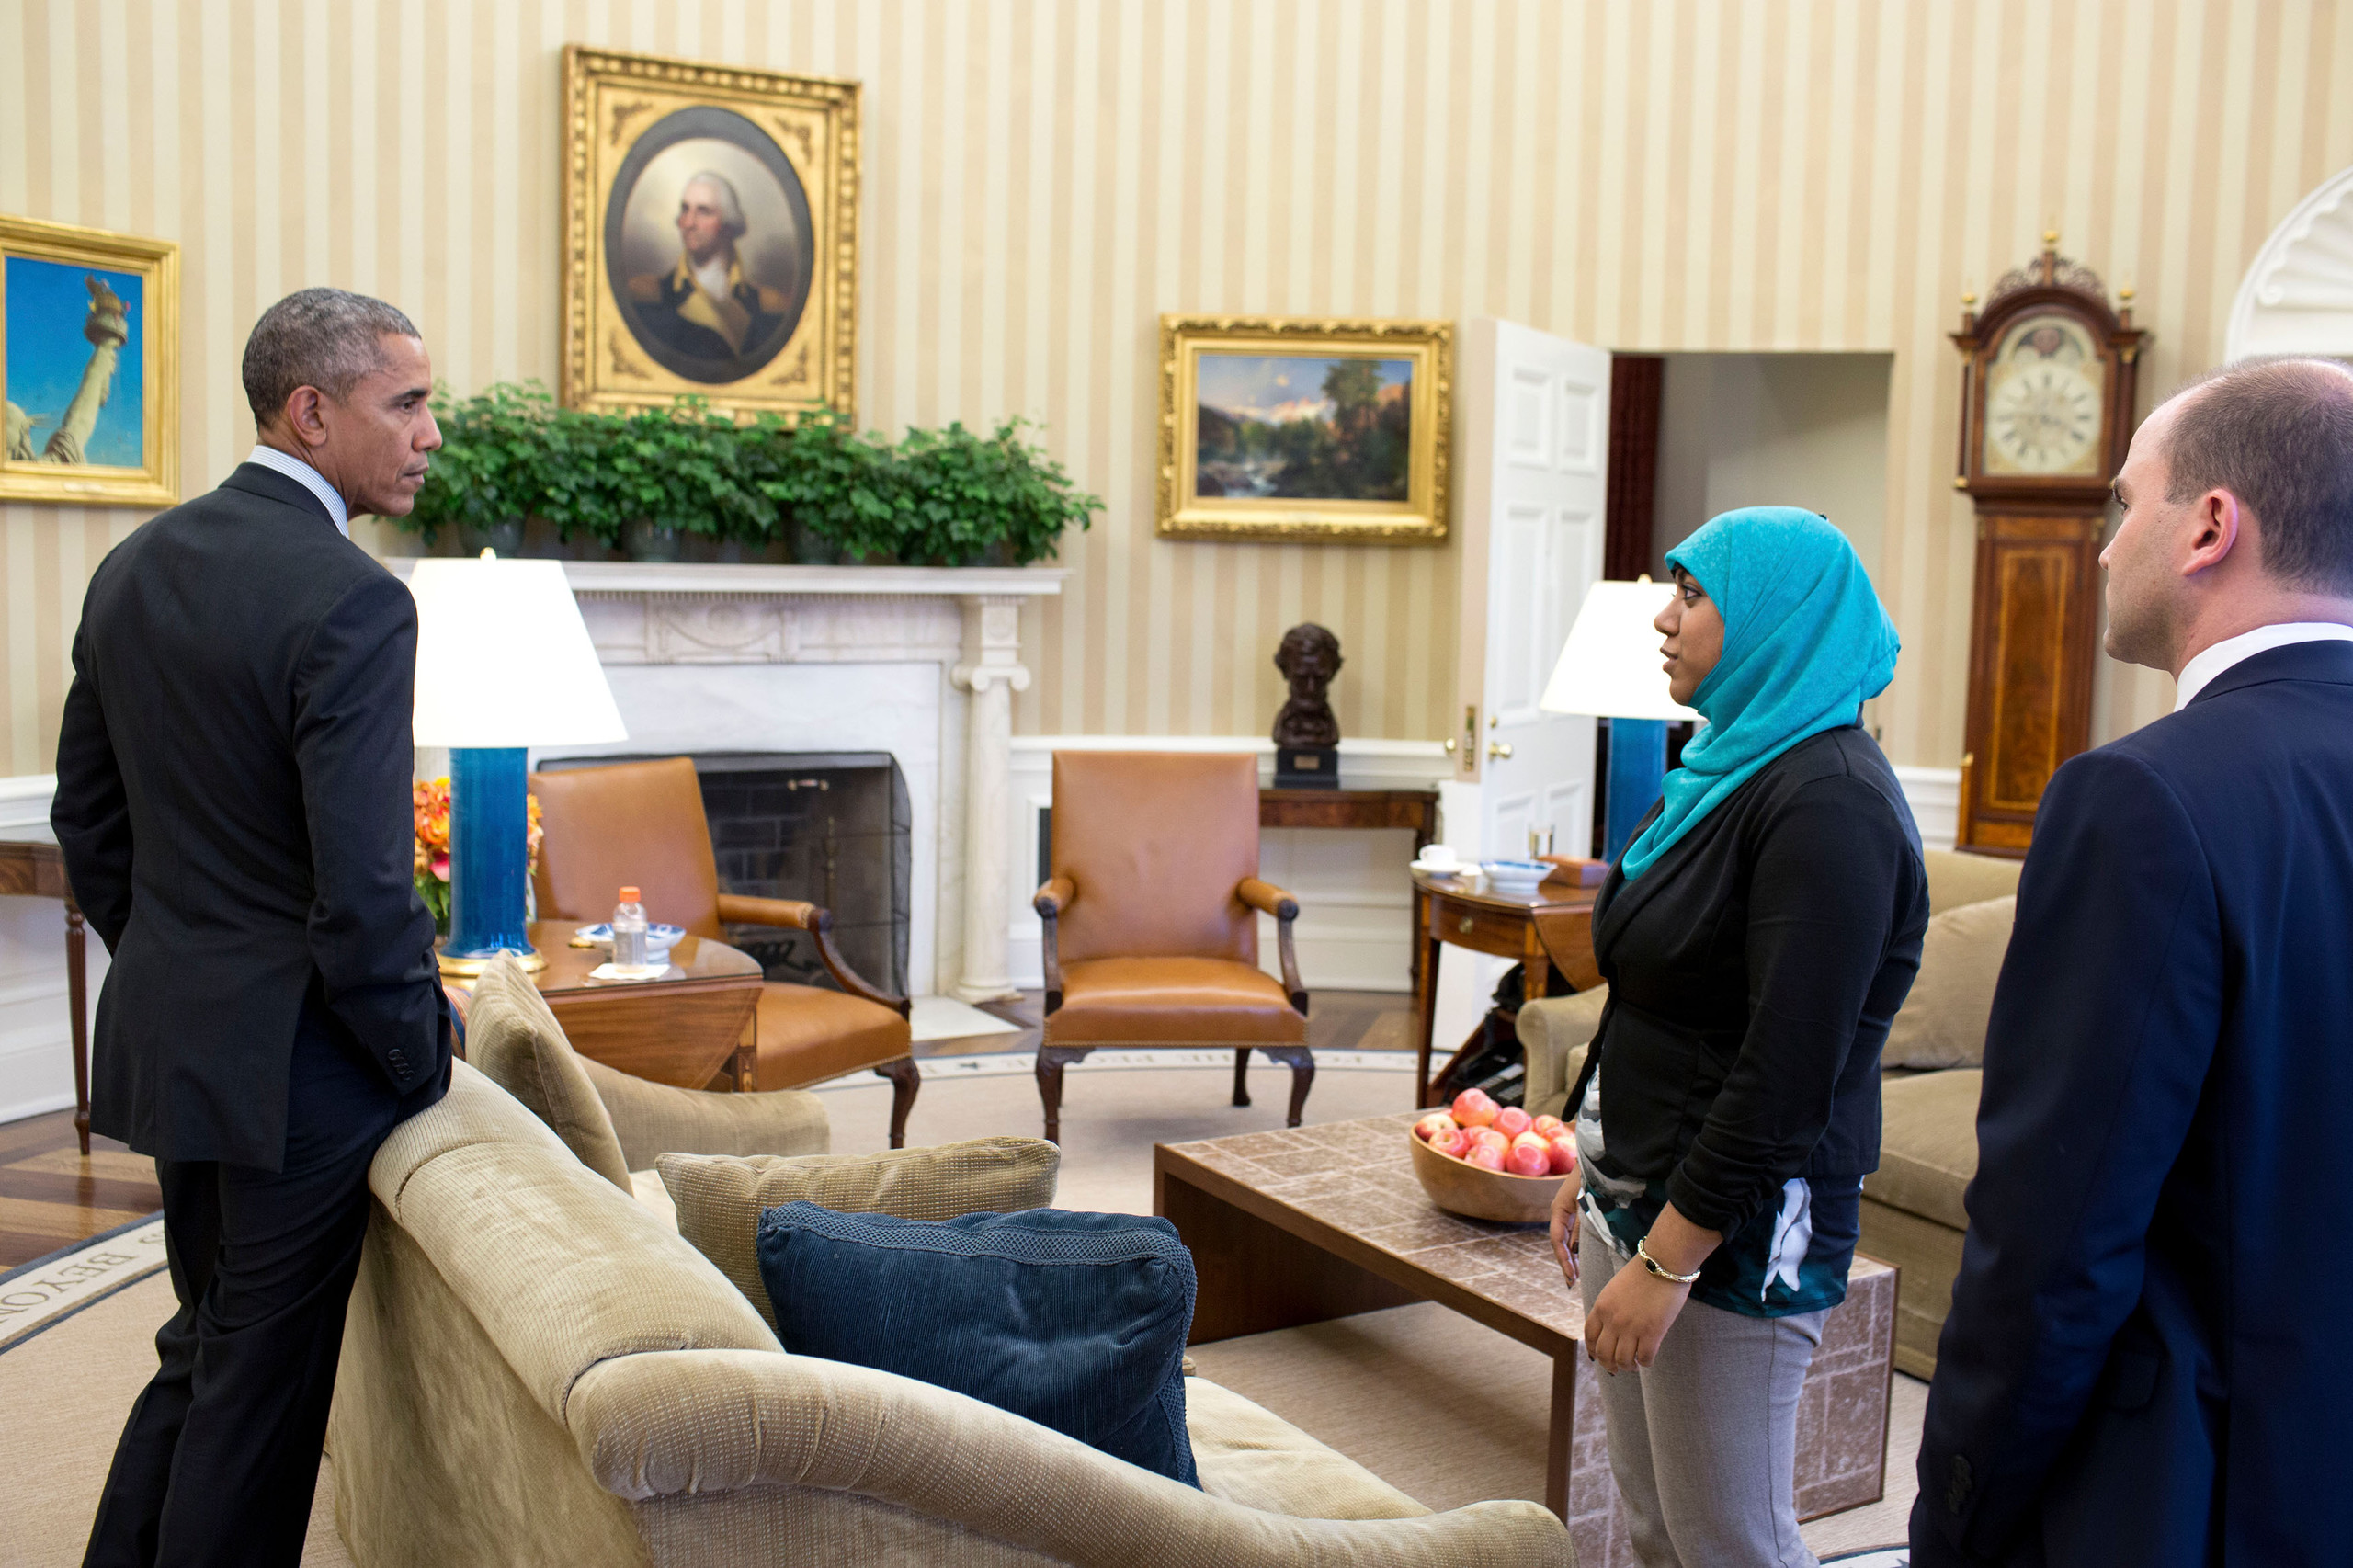 rumana ahmed, rumana ahmed atlantic, rumana ahmed white house, rumana ahmed trump